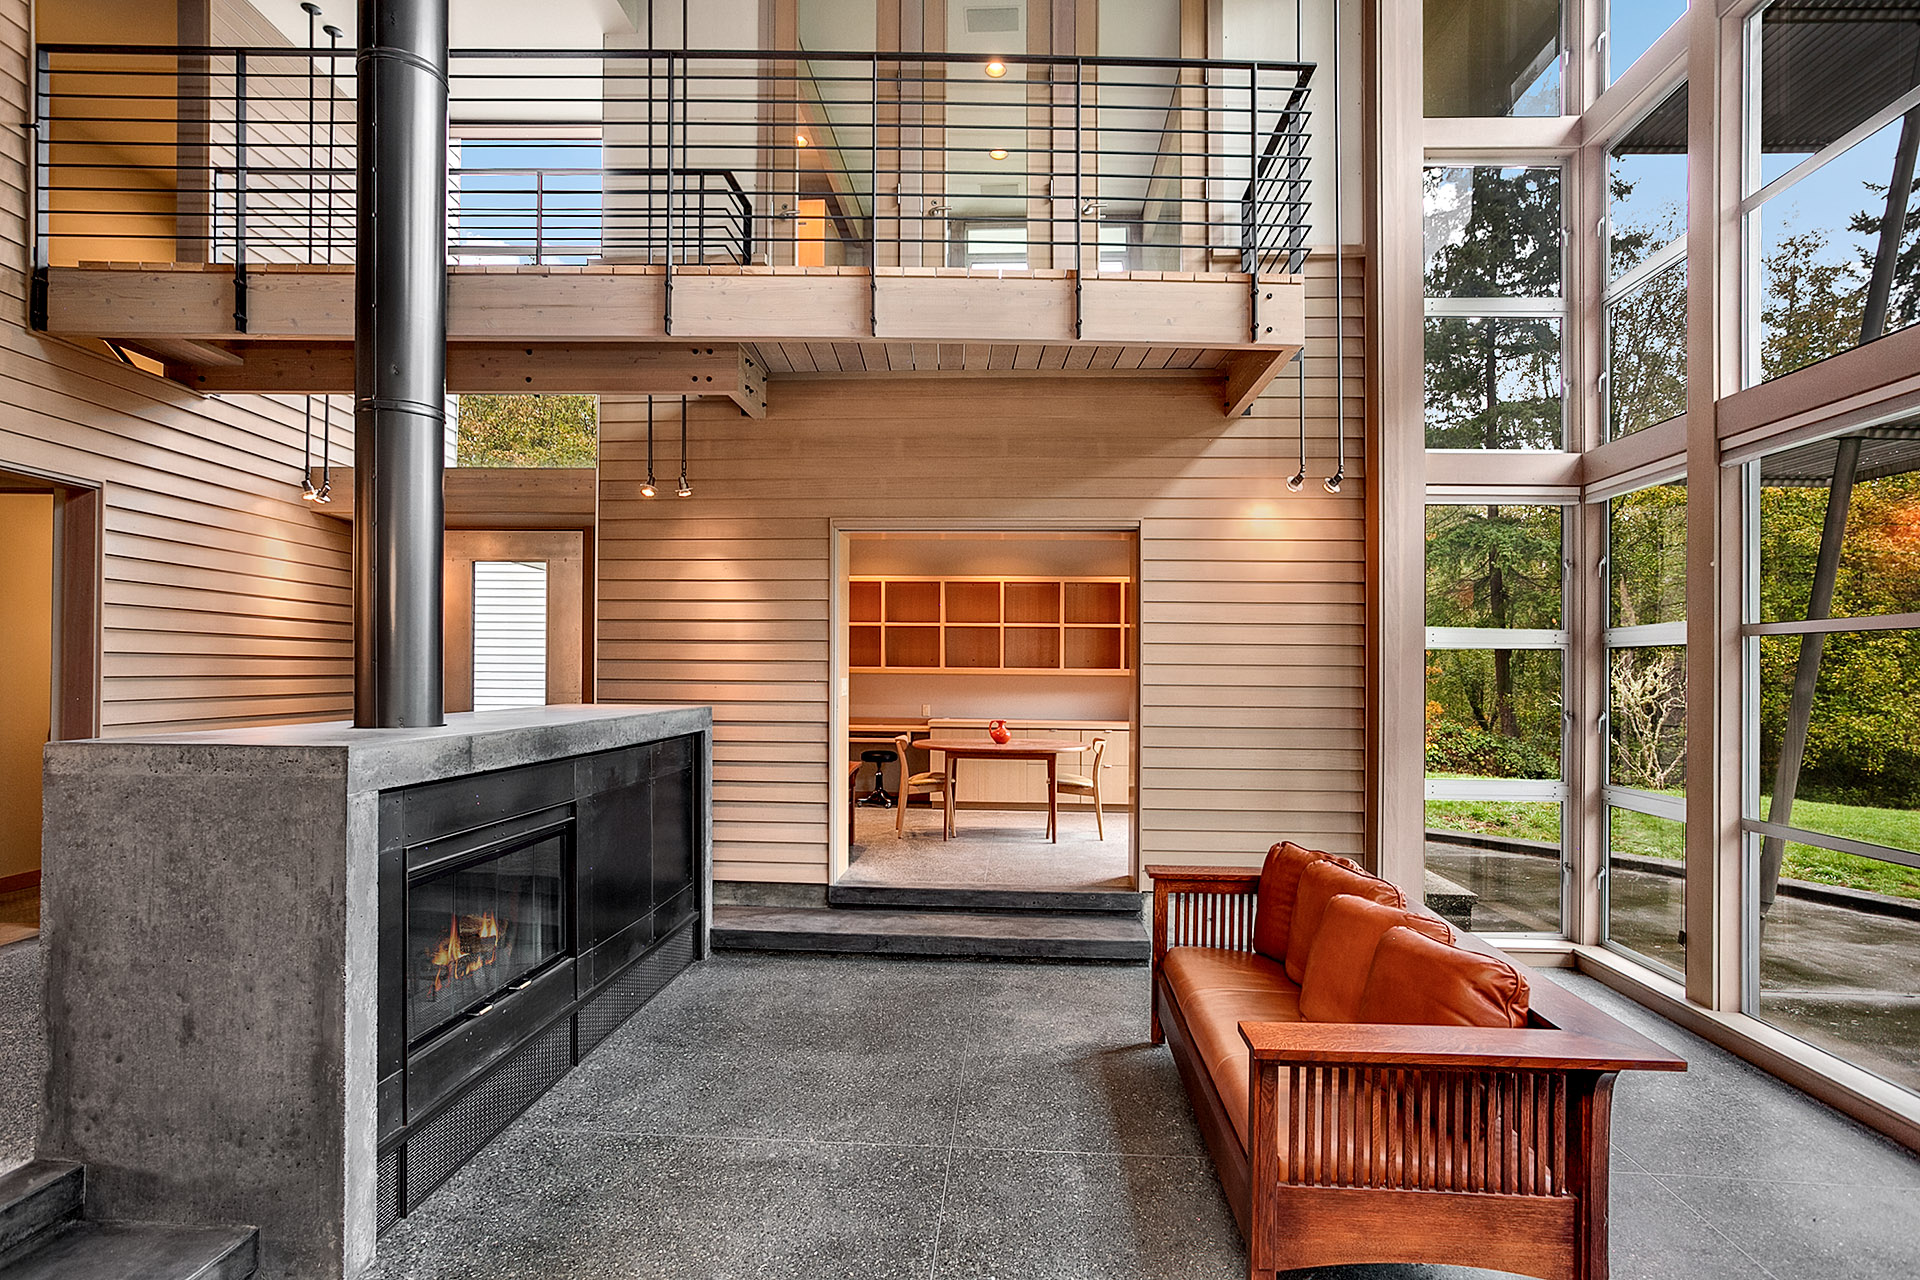 Surprising Small Spaces George Contemporary - Simple Design Home ...